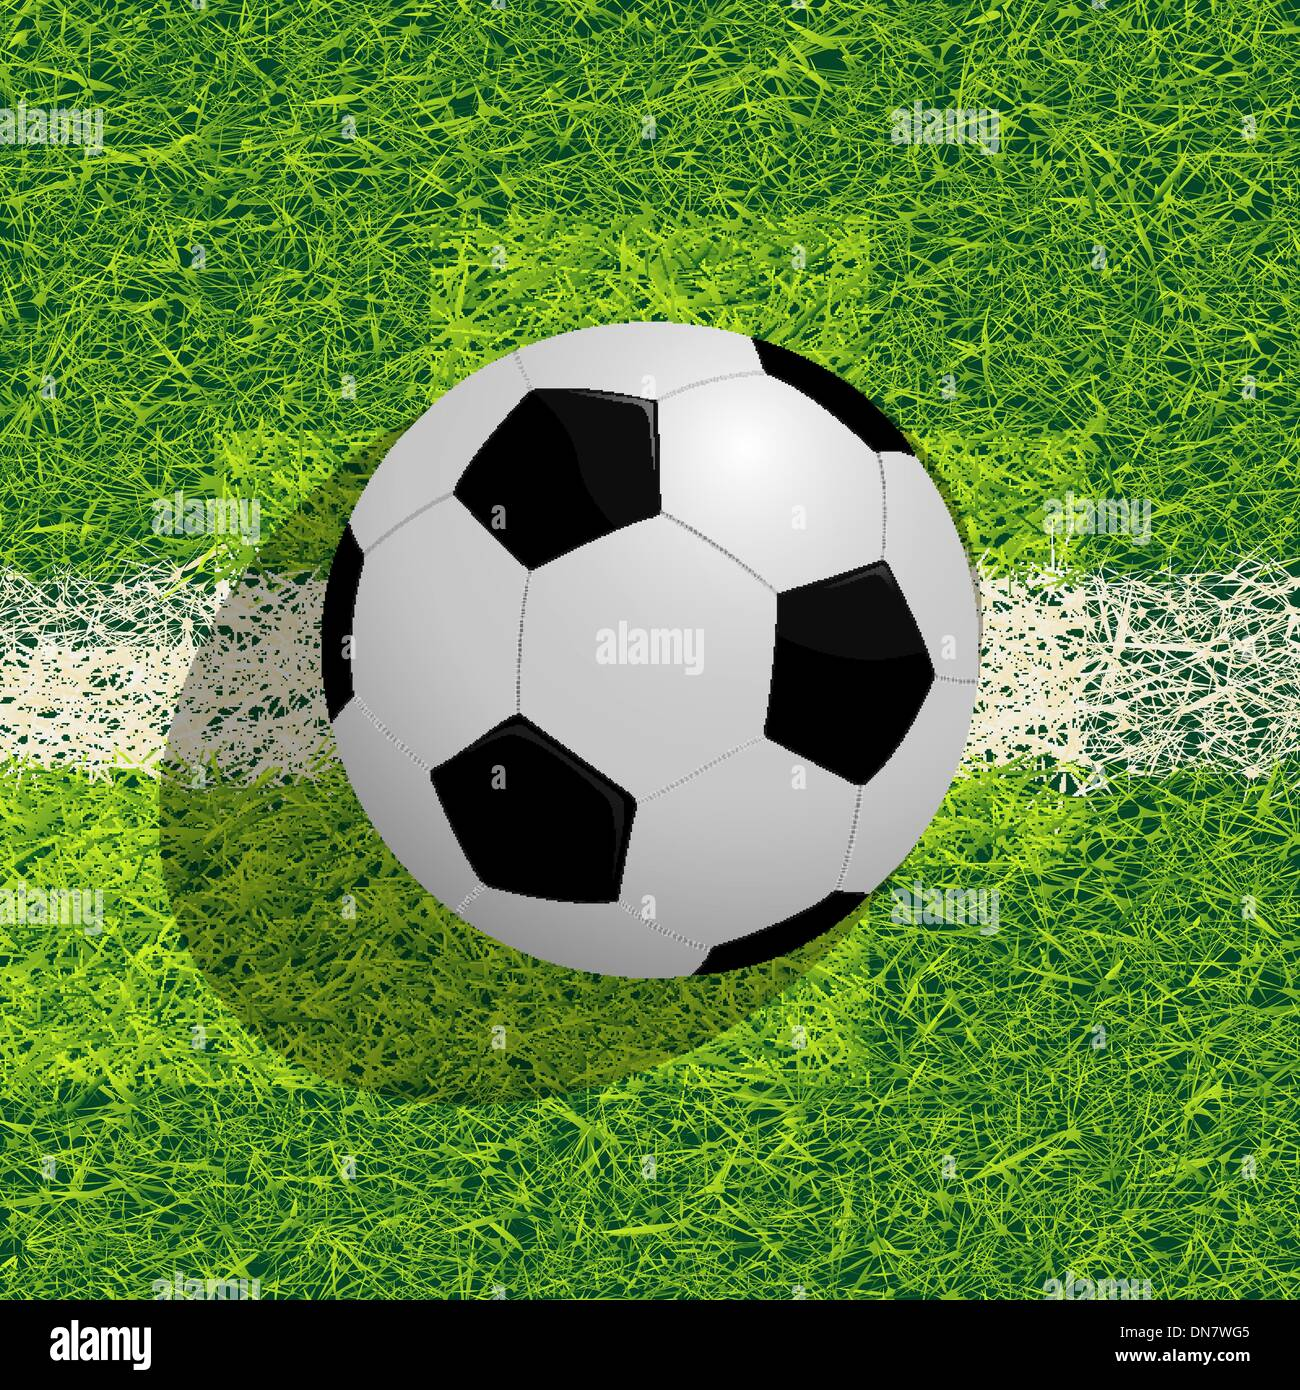 Soocer ball on the field - Stock Image